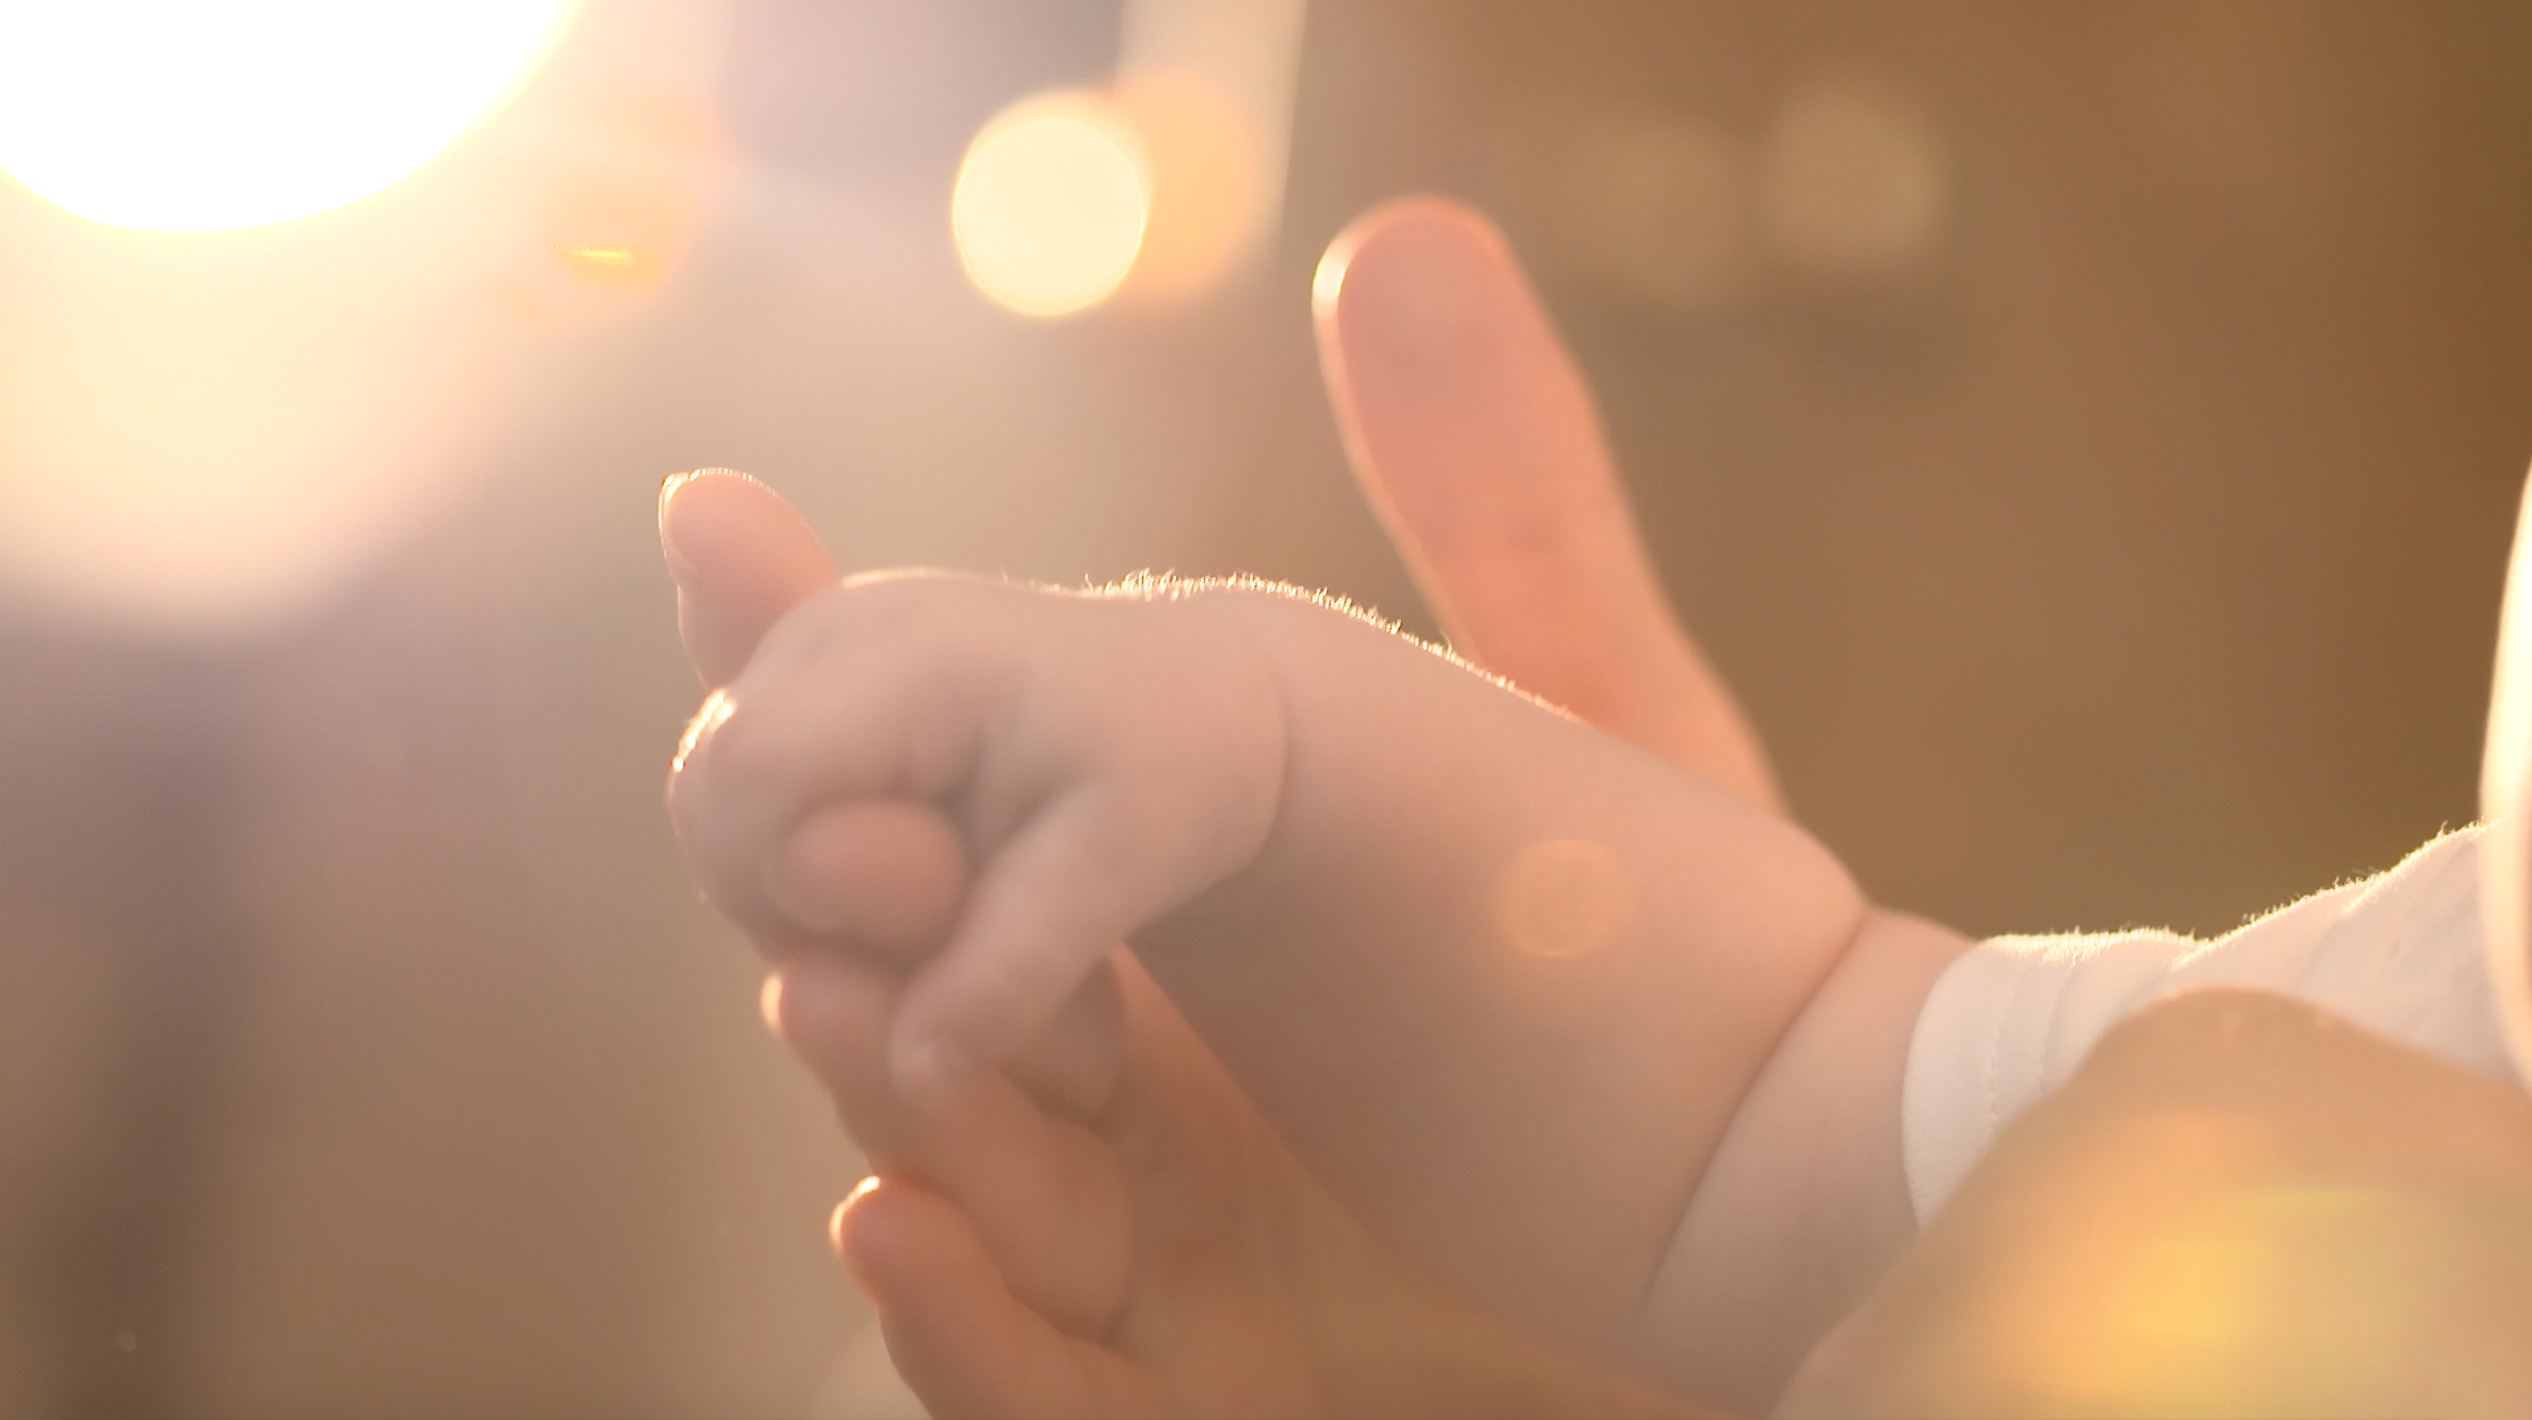 Infant holding the hand of an adult